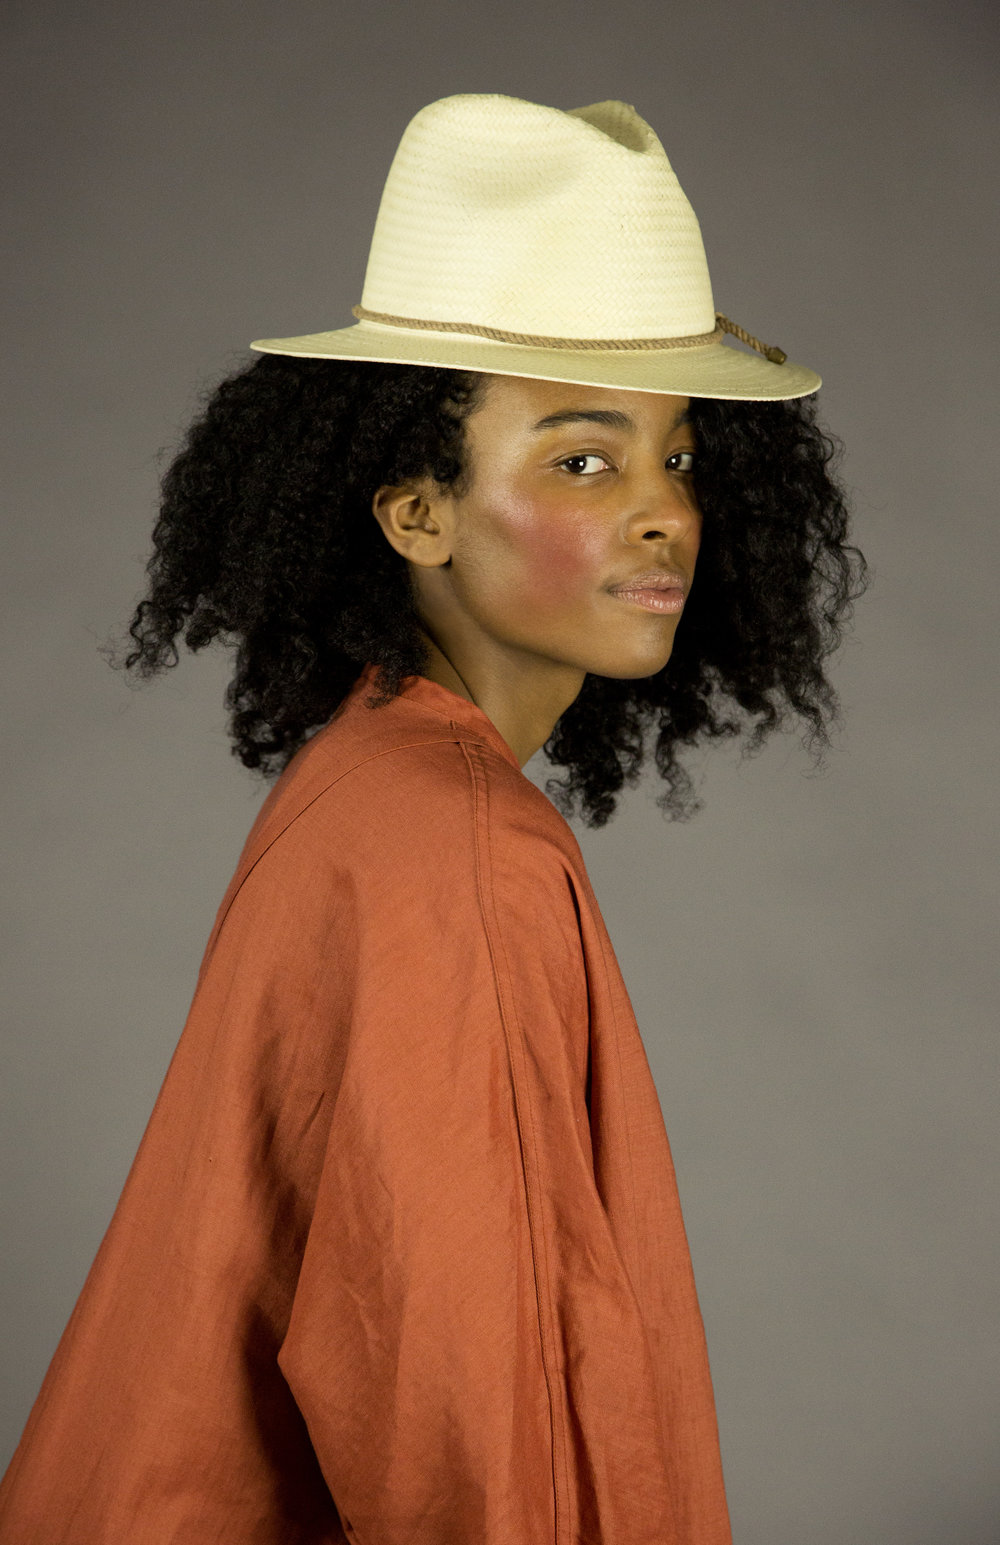 hat 2 straw  straw fedora with signature natural melange rope detail and brass metal tips.made in collaboration with bollman hats, the oldest hat manufacturer in america.  sizes 1-2  100% straw  100% cotton interior band in our signature khaki twill